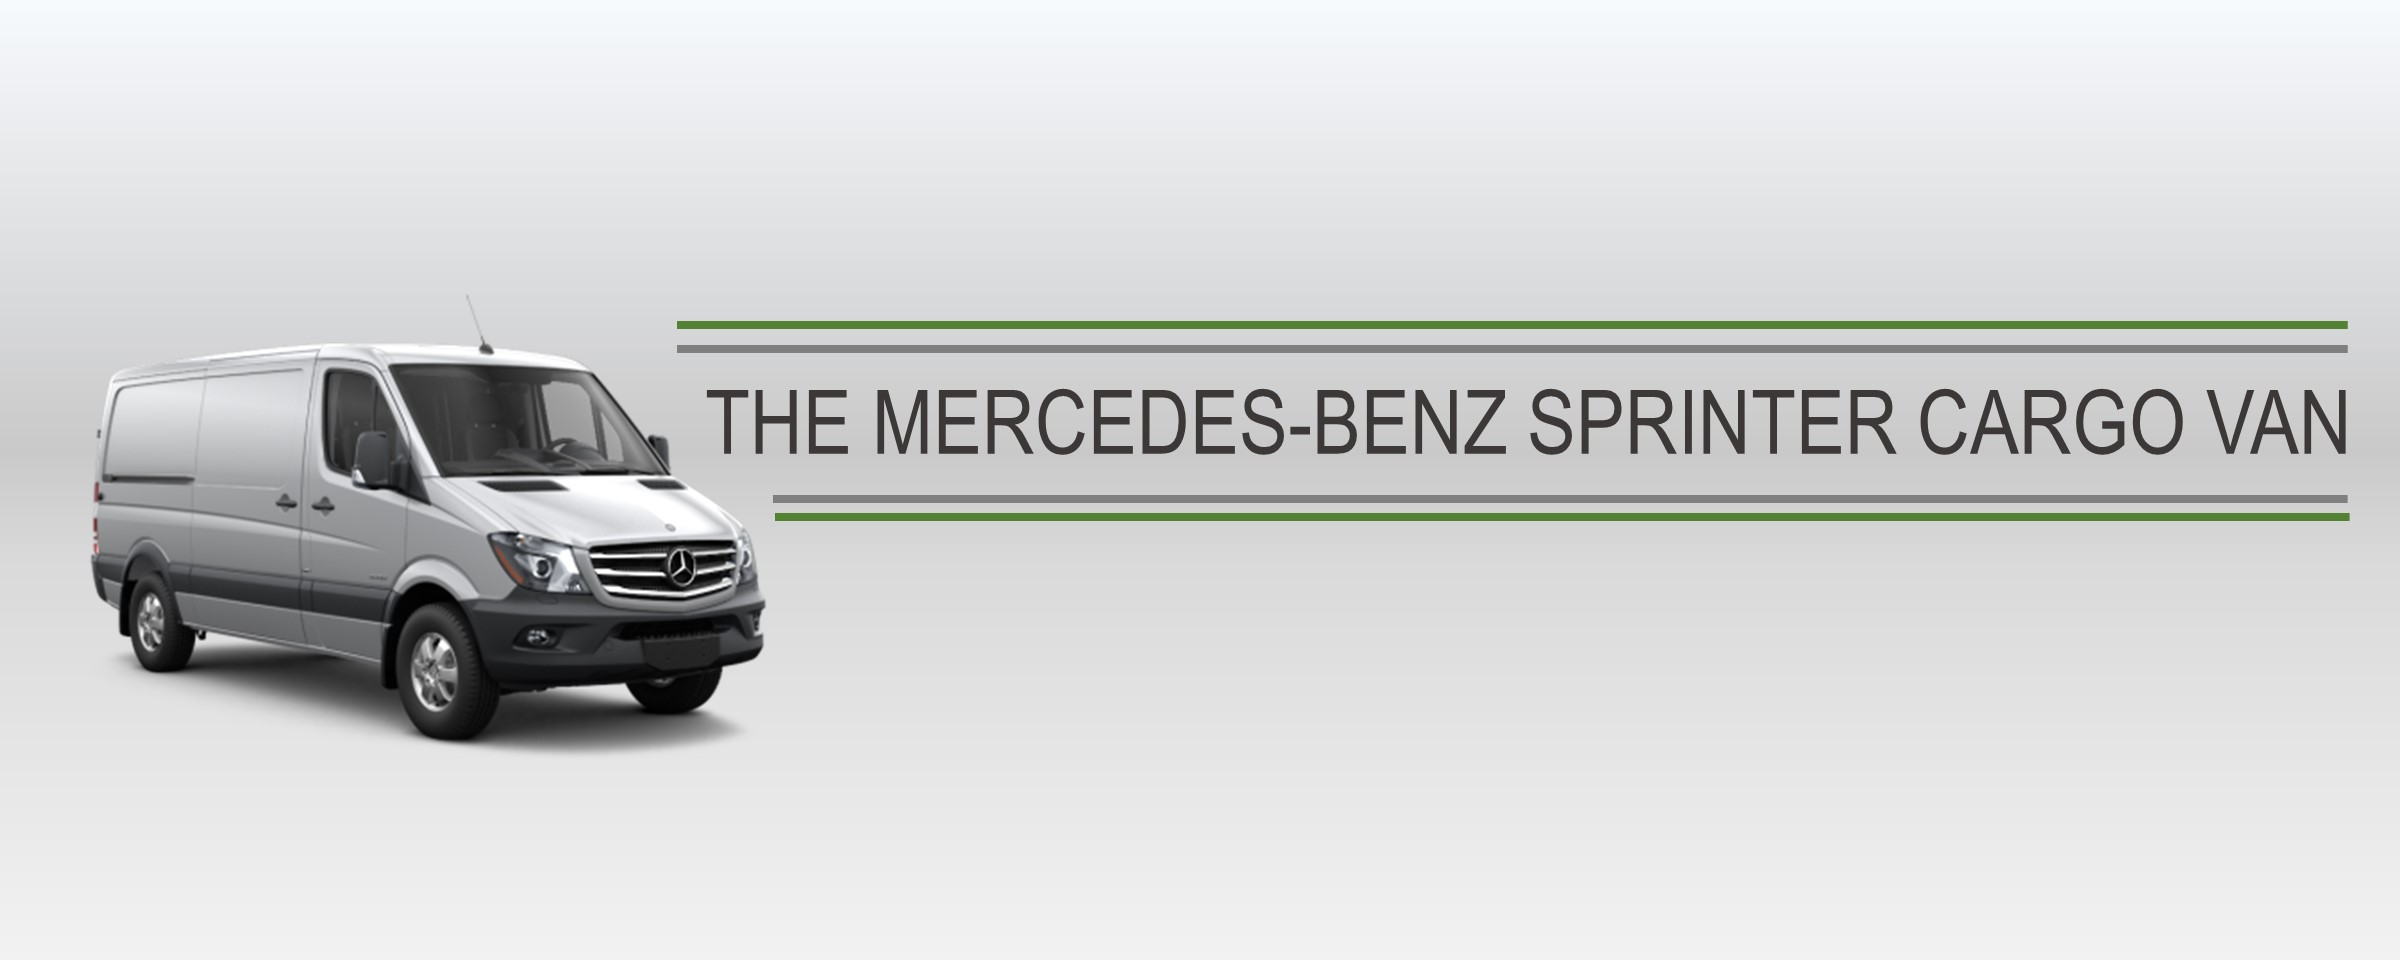 Amazing quality the mercedes benz sprinter cargo van for Mercedes benz sprinter cargo van